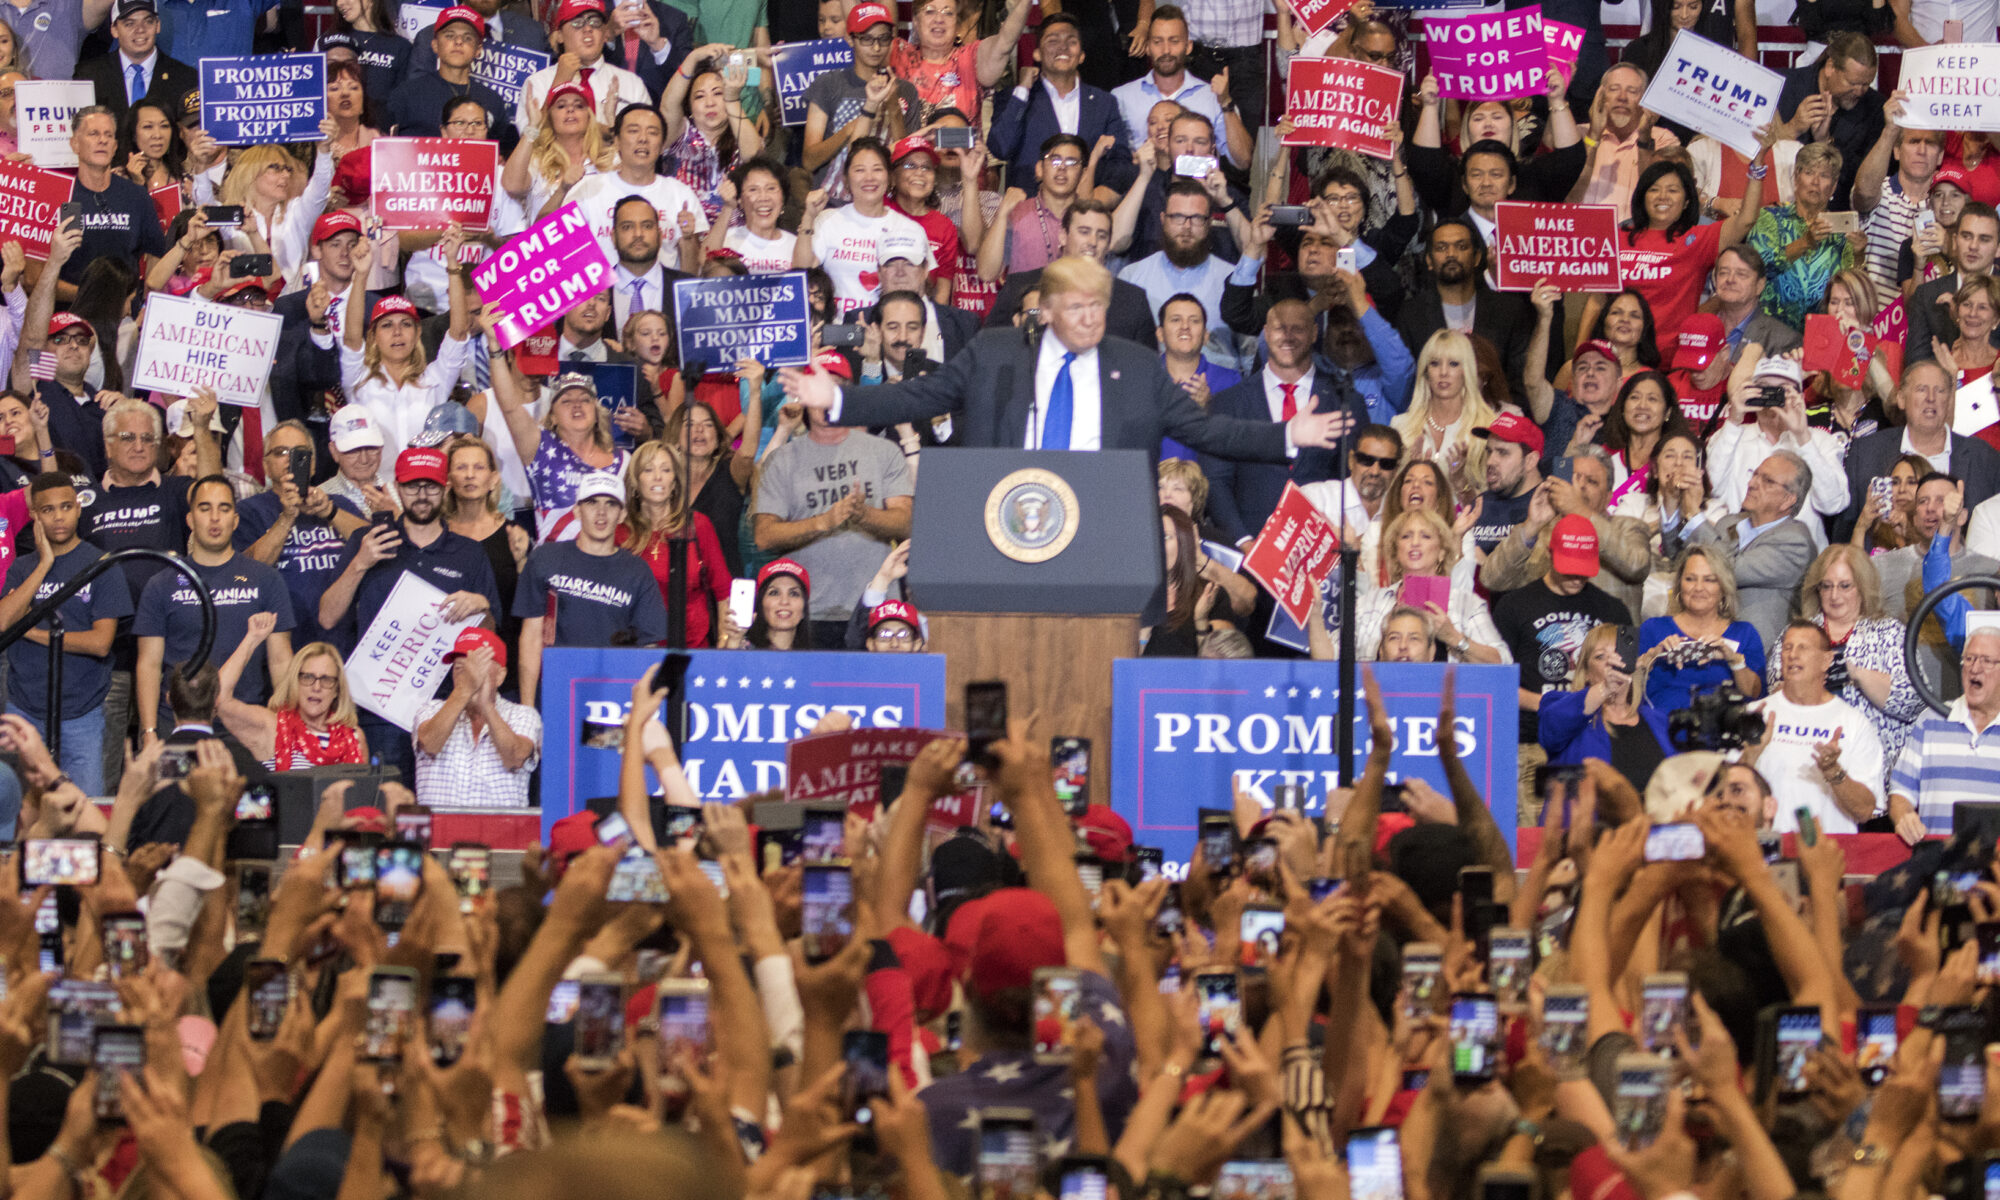 President Donald Trump speaks at a campaign rally.